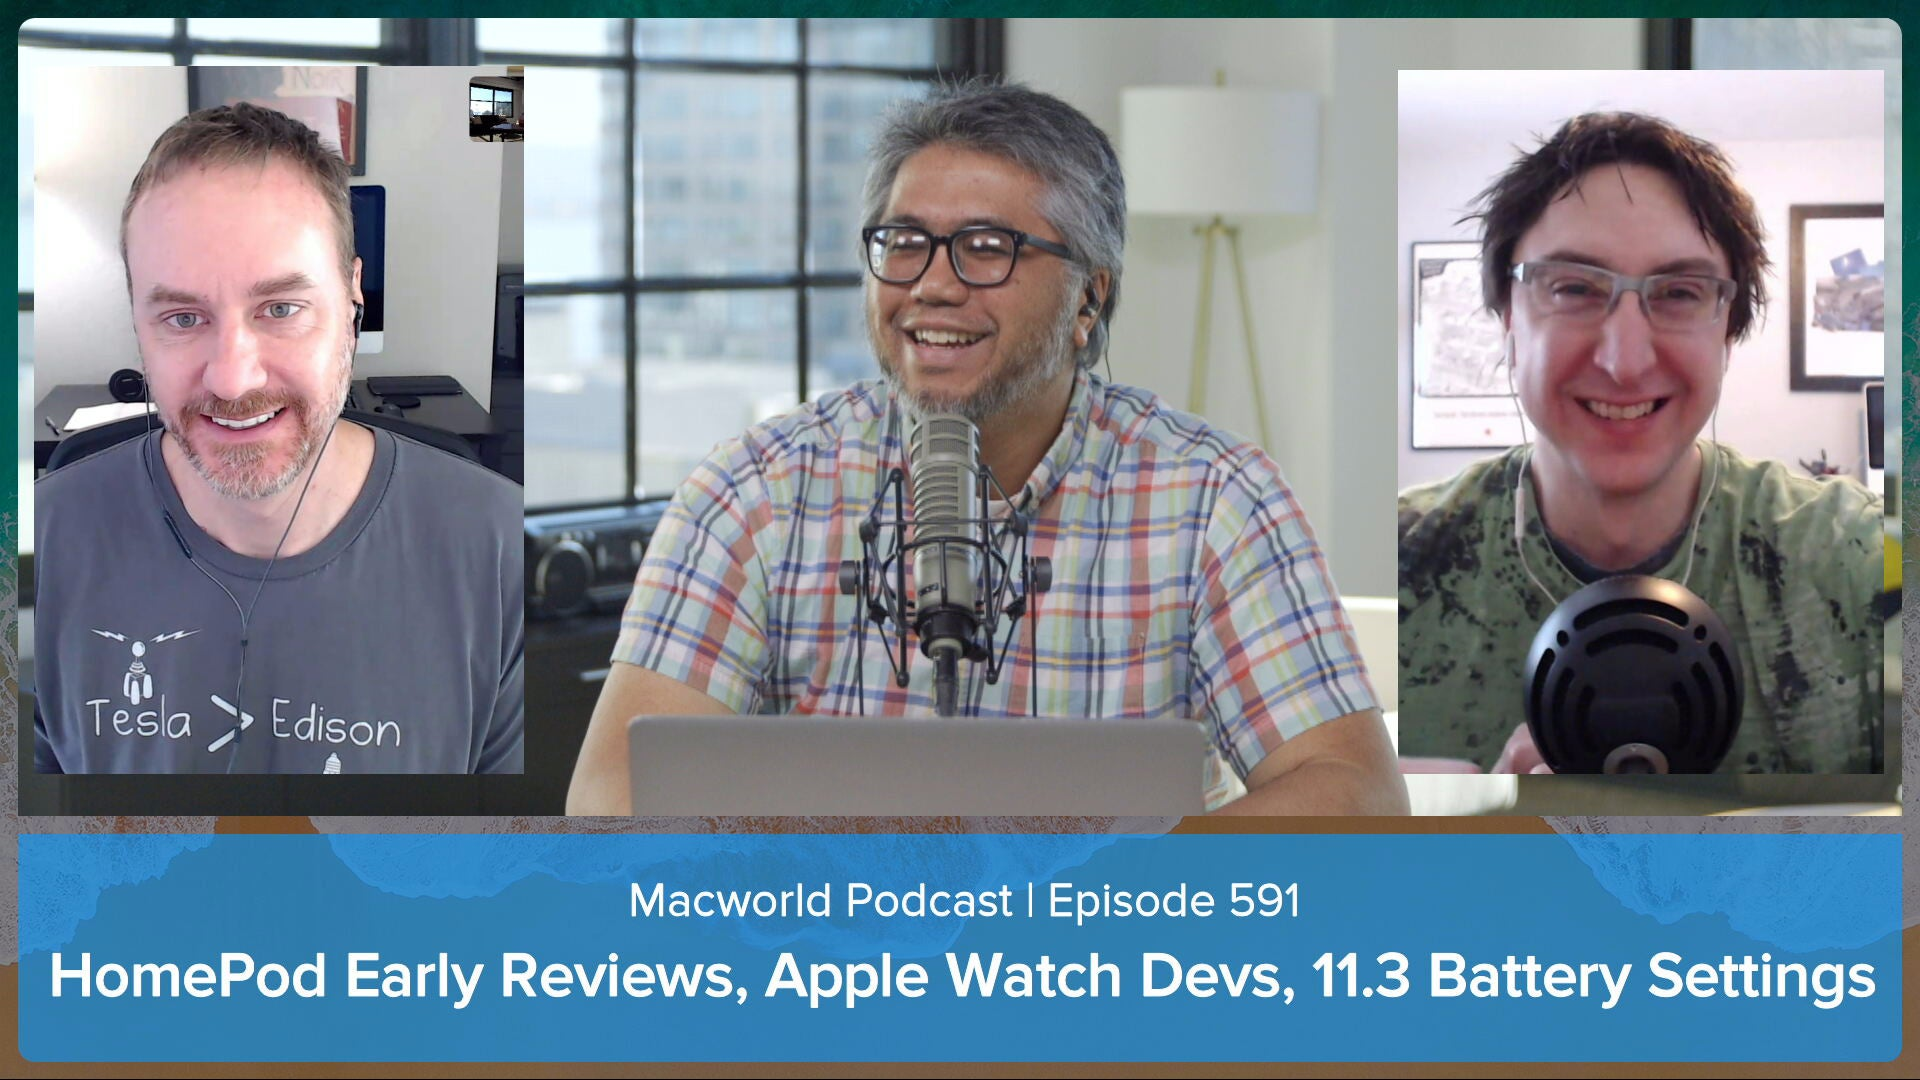 Macworld Podcast 591